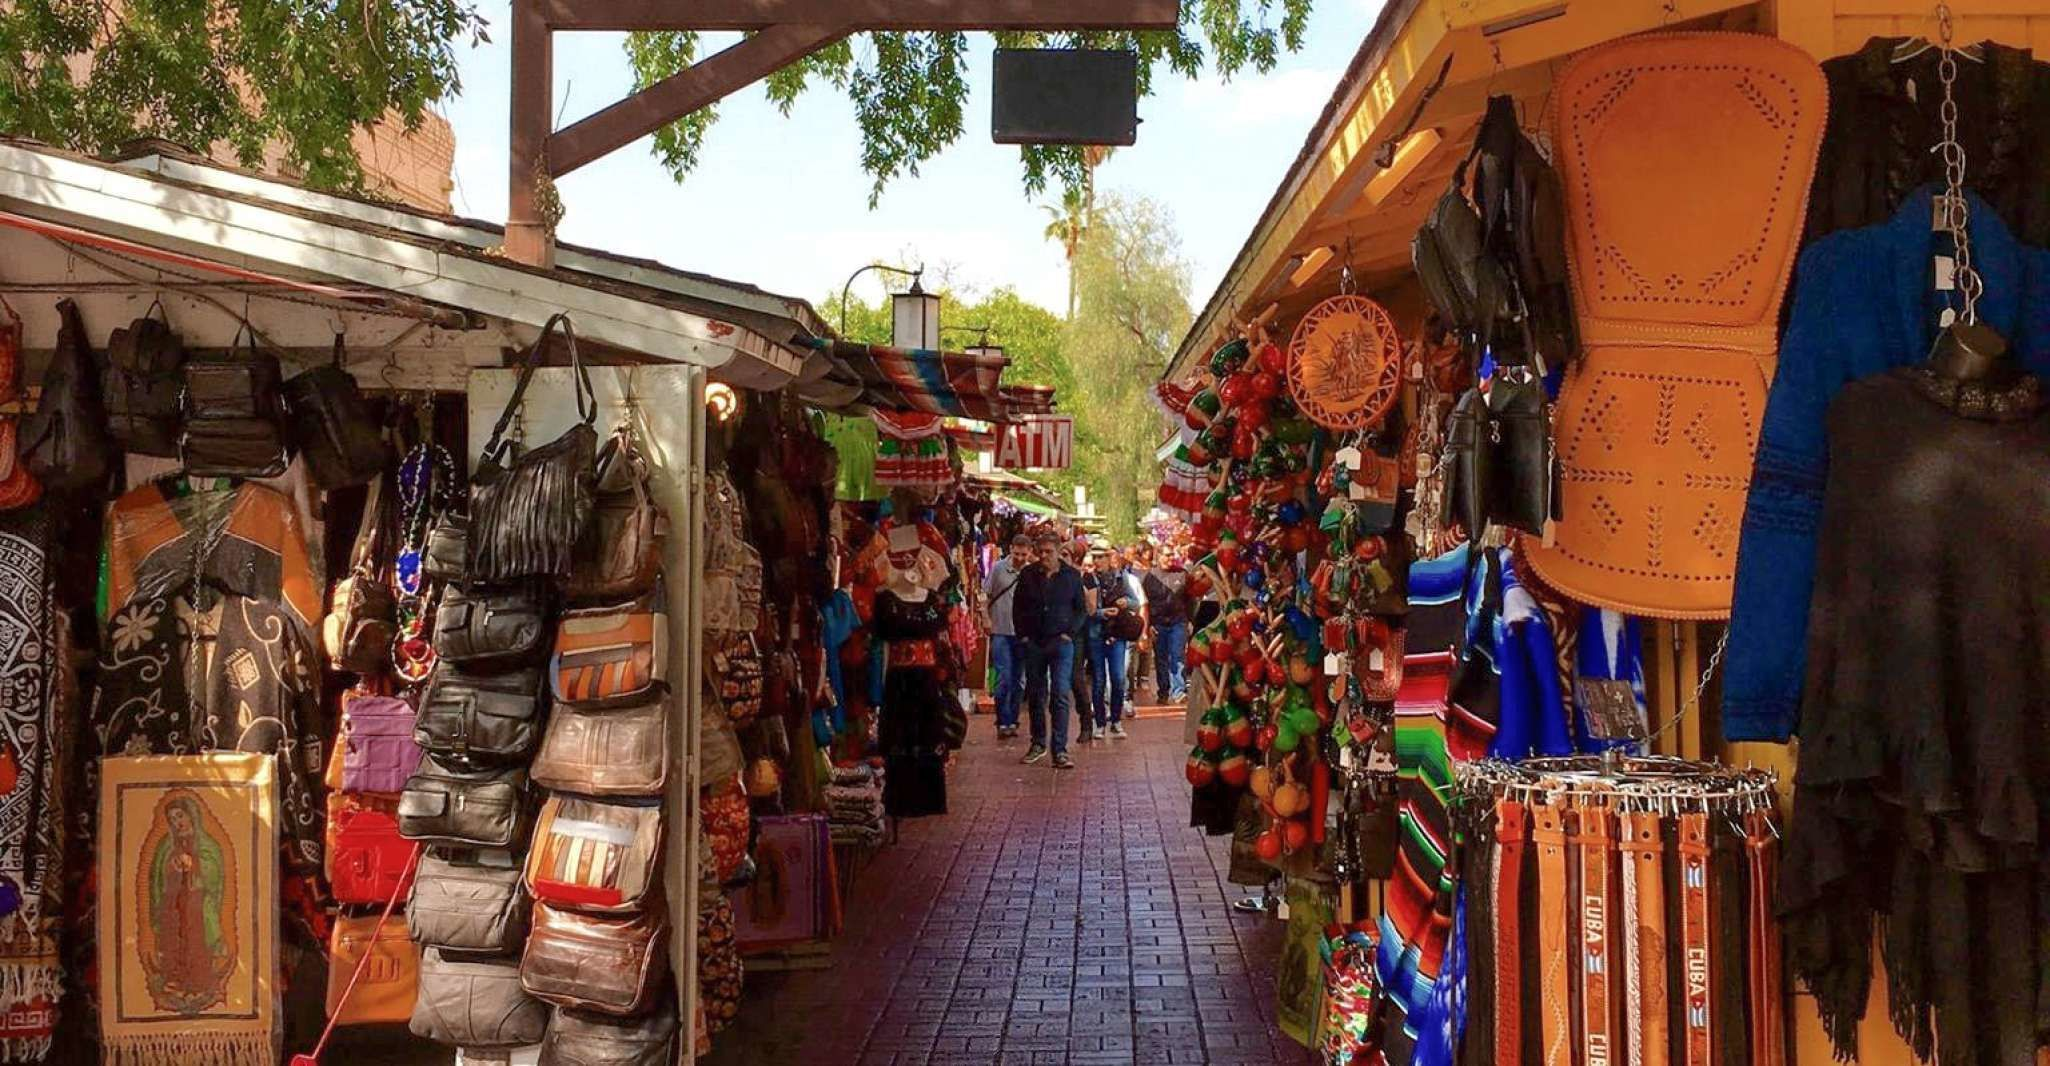 Downtown Los Angeles: Food, Arts and Culture Walking Tour